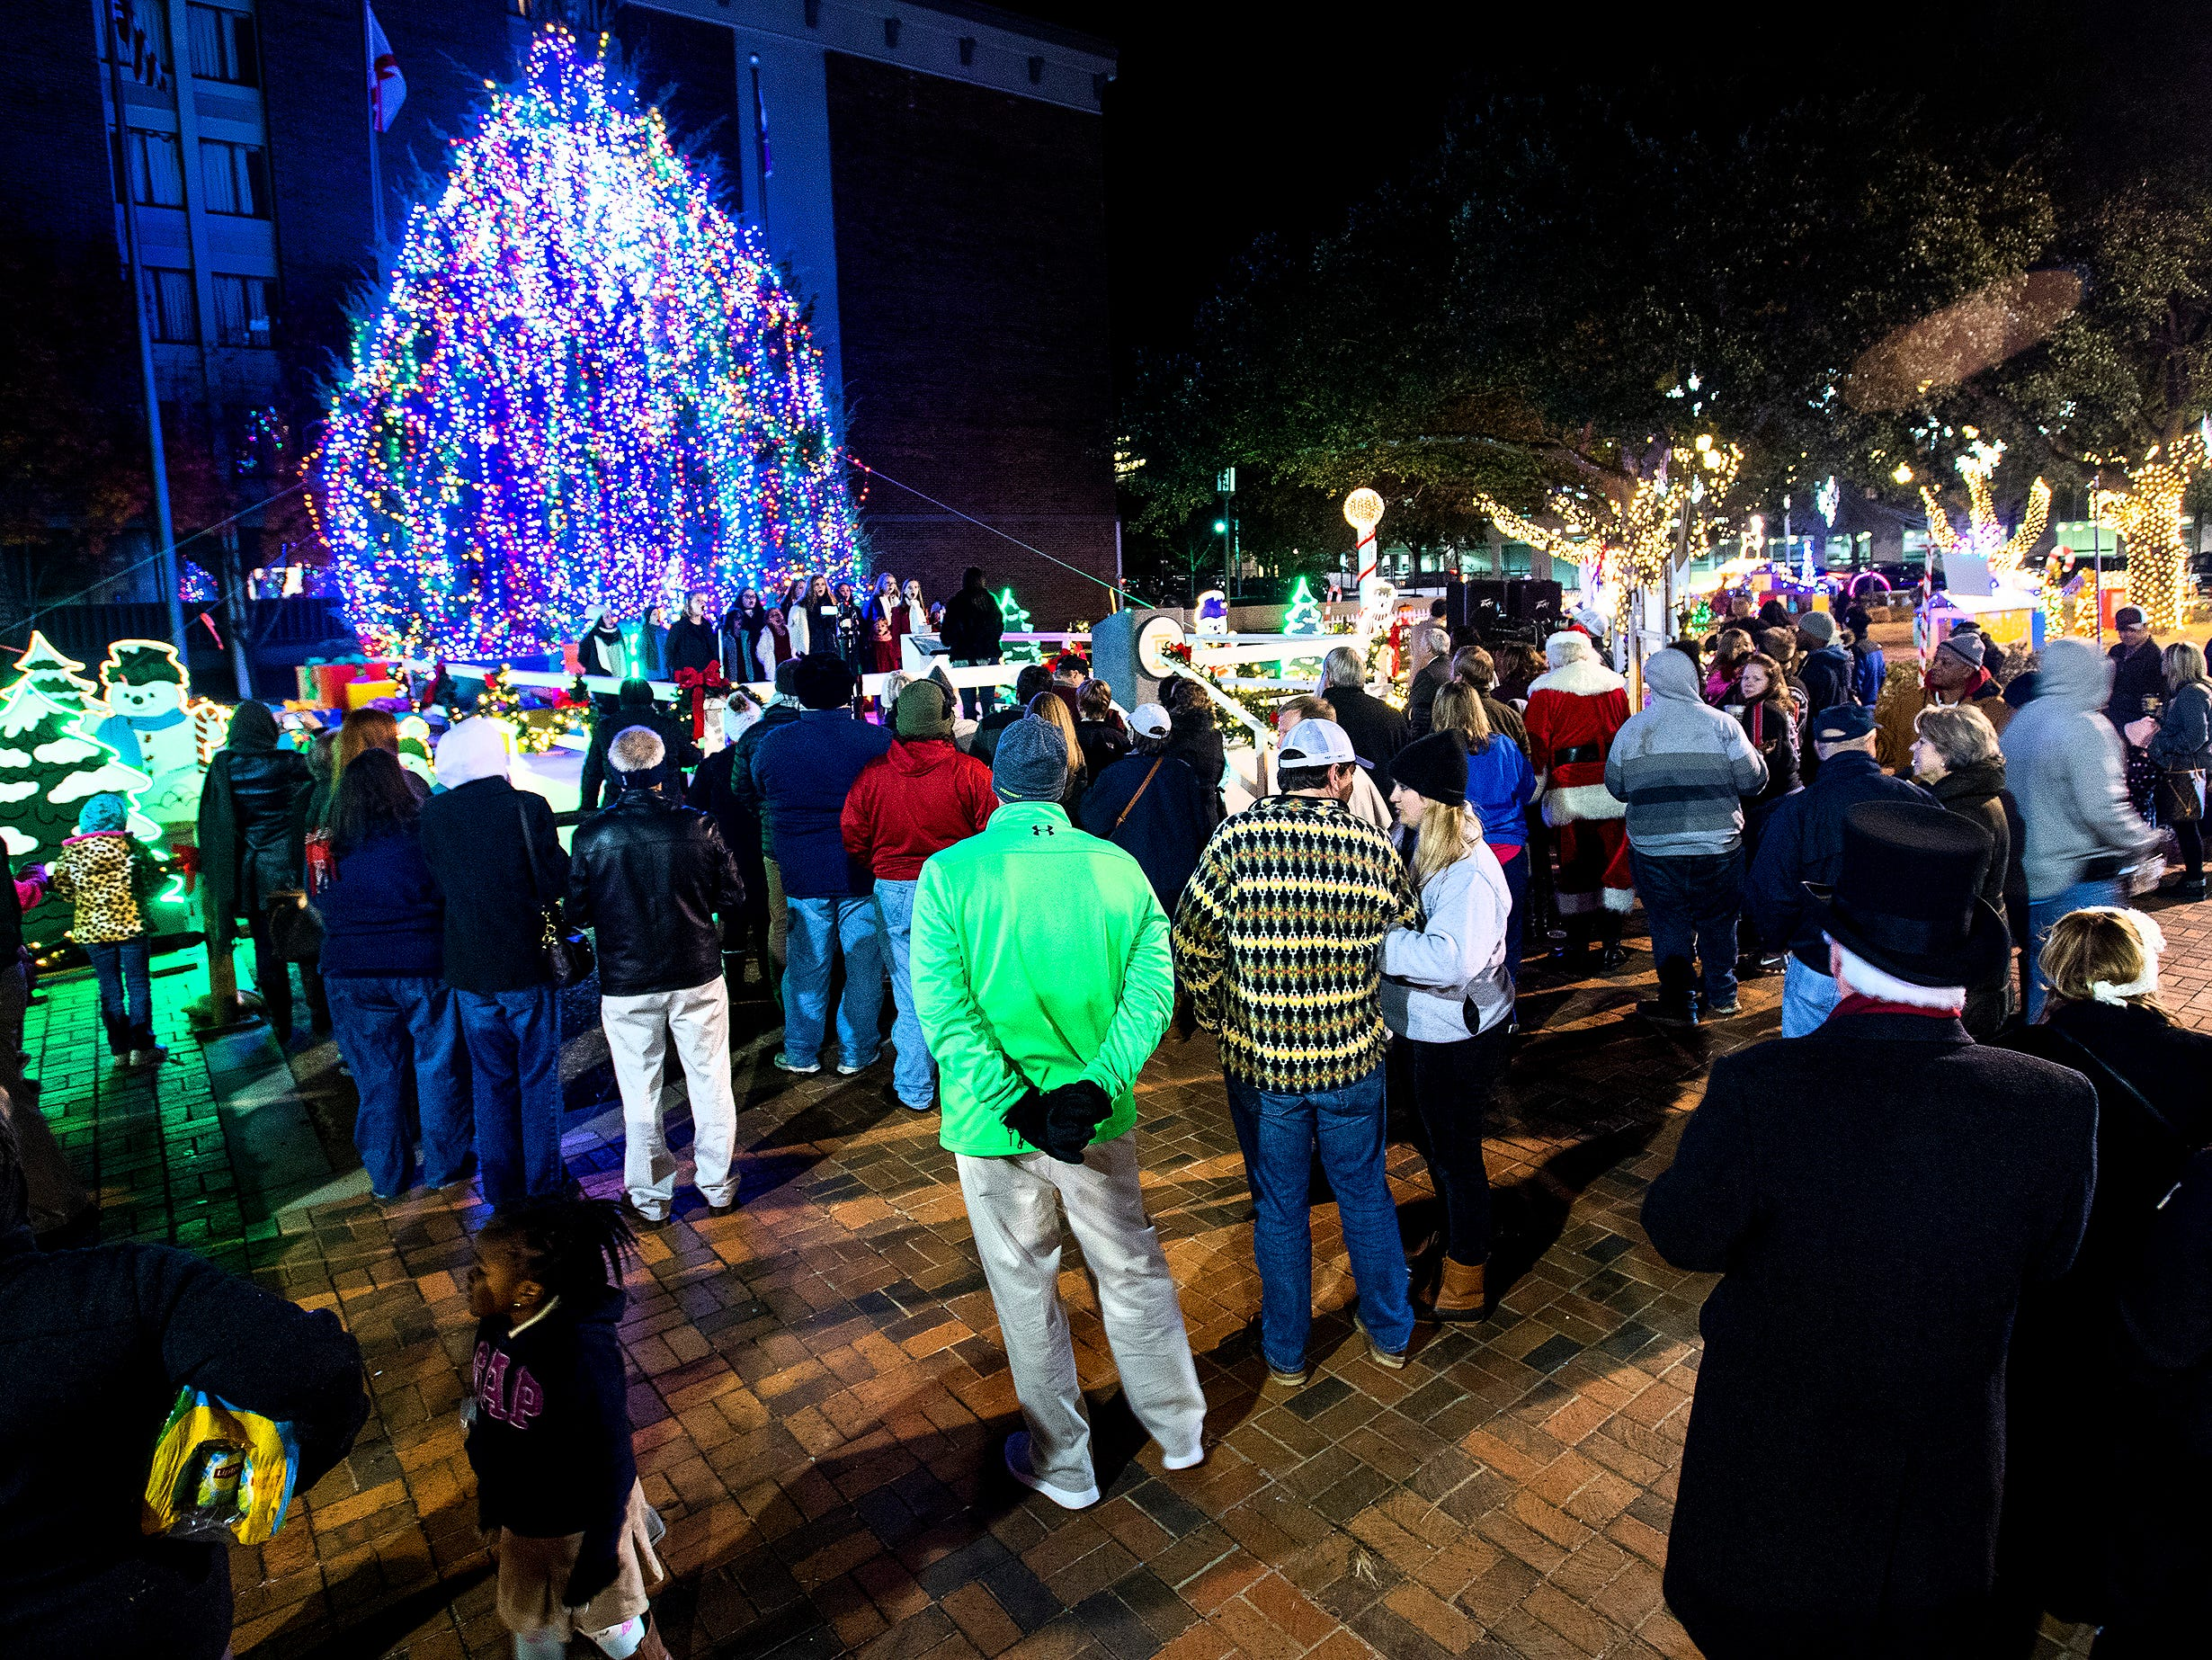 The City of Montgomery Christmas Tree lighting is held in Montgomery, Ala., on Tuesday evening November 27, 2018.